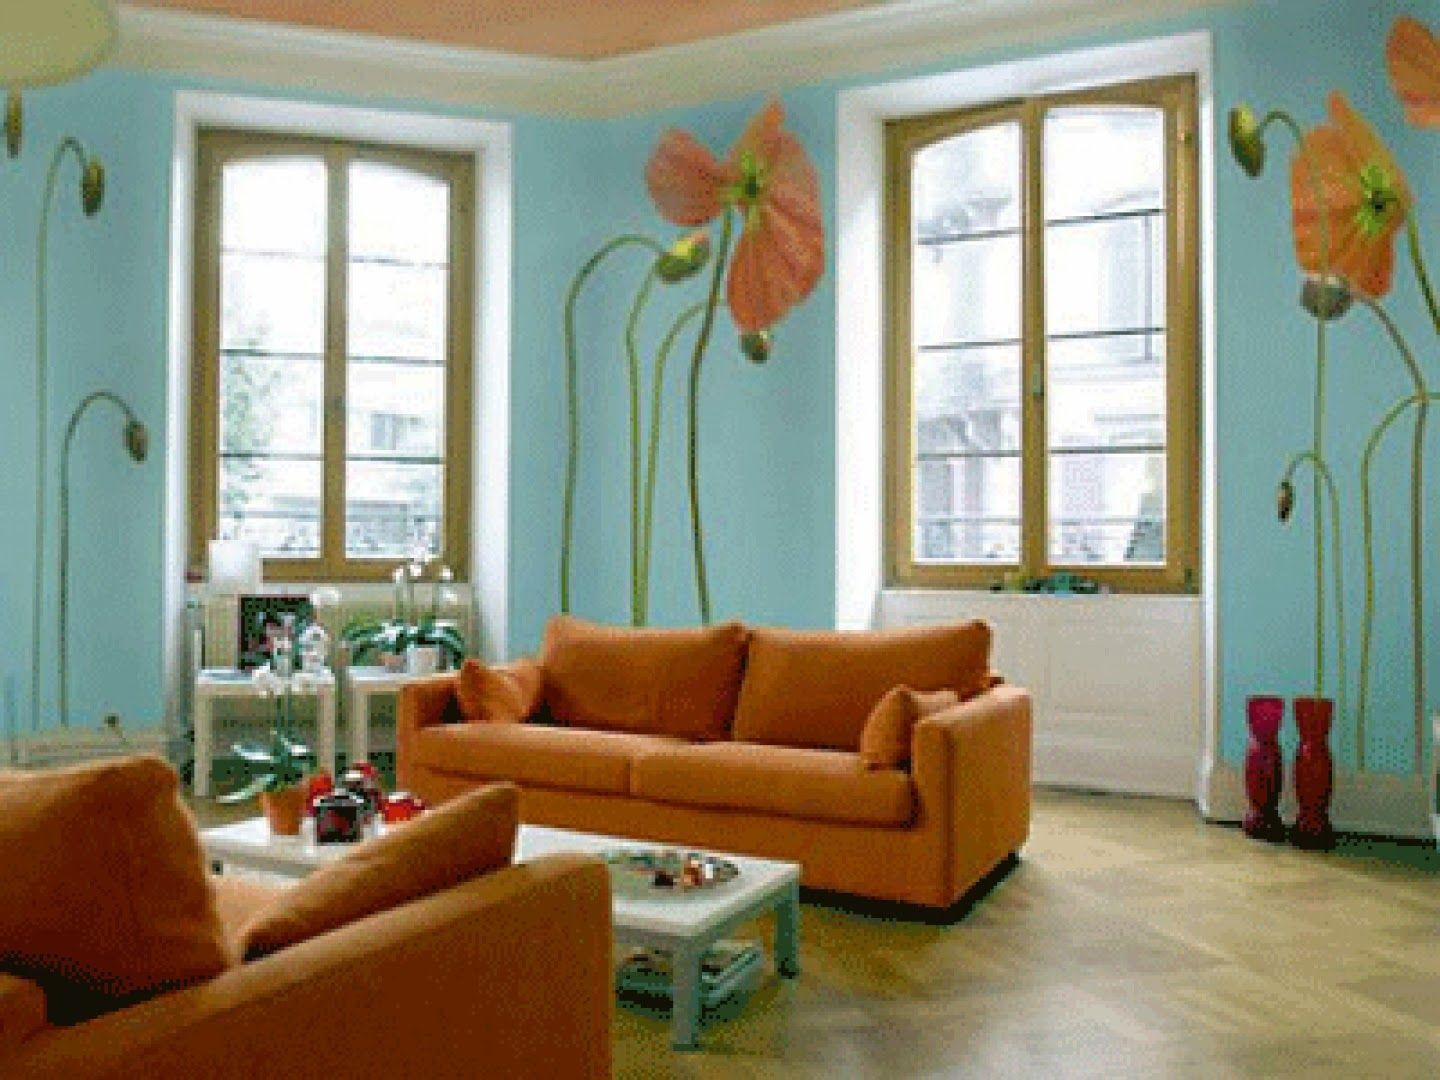 Living room blue paint color ideas - Interior Awesome Living Room Decoration With Light Blue Asian Paint Wall Colors Along With